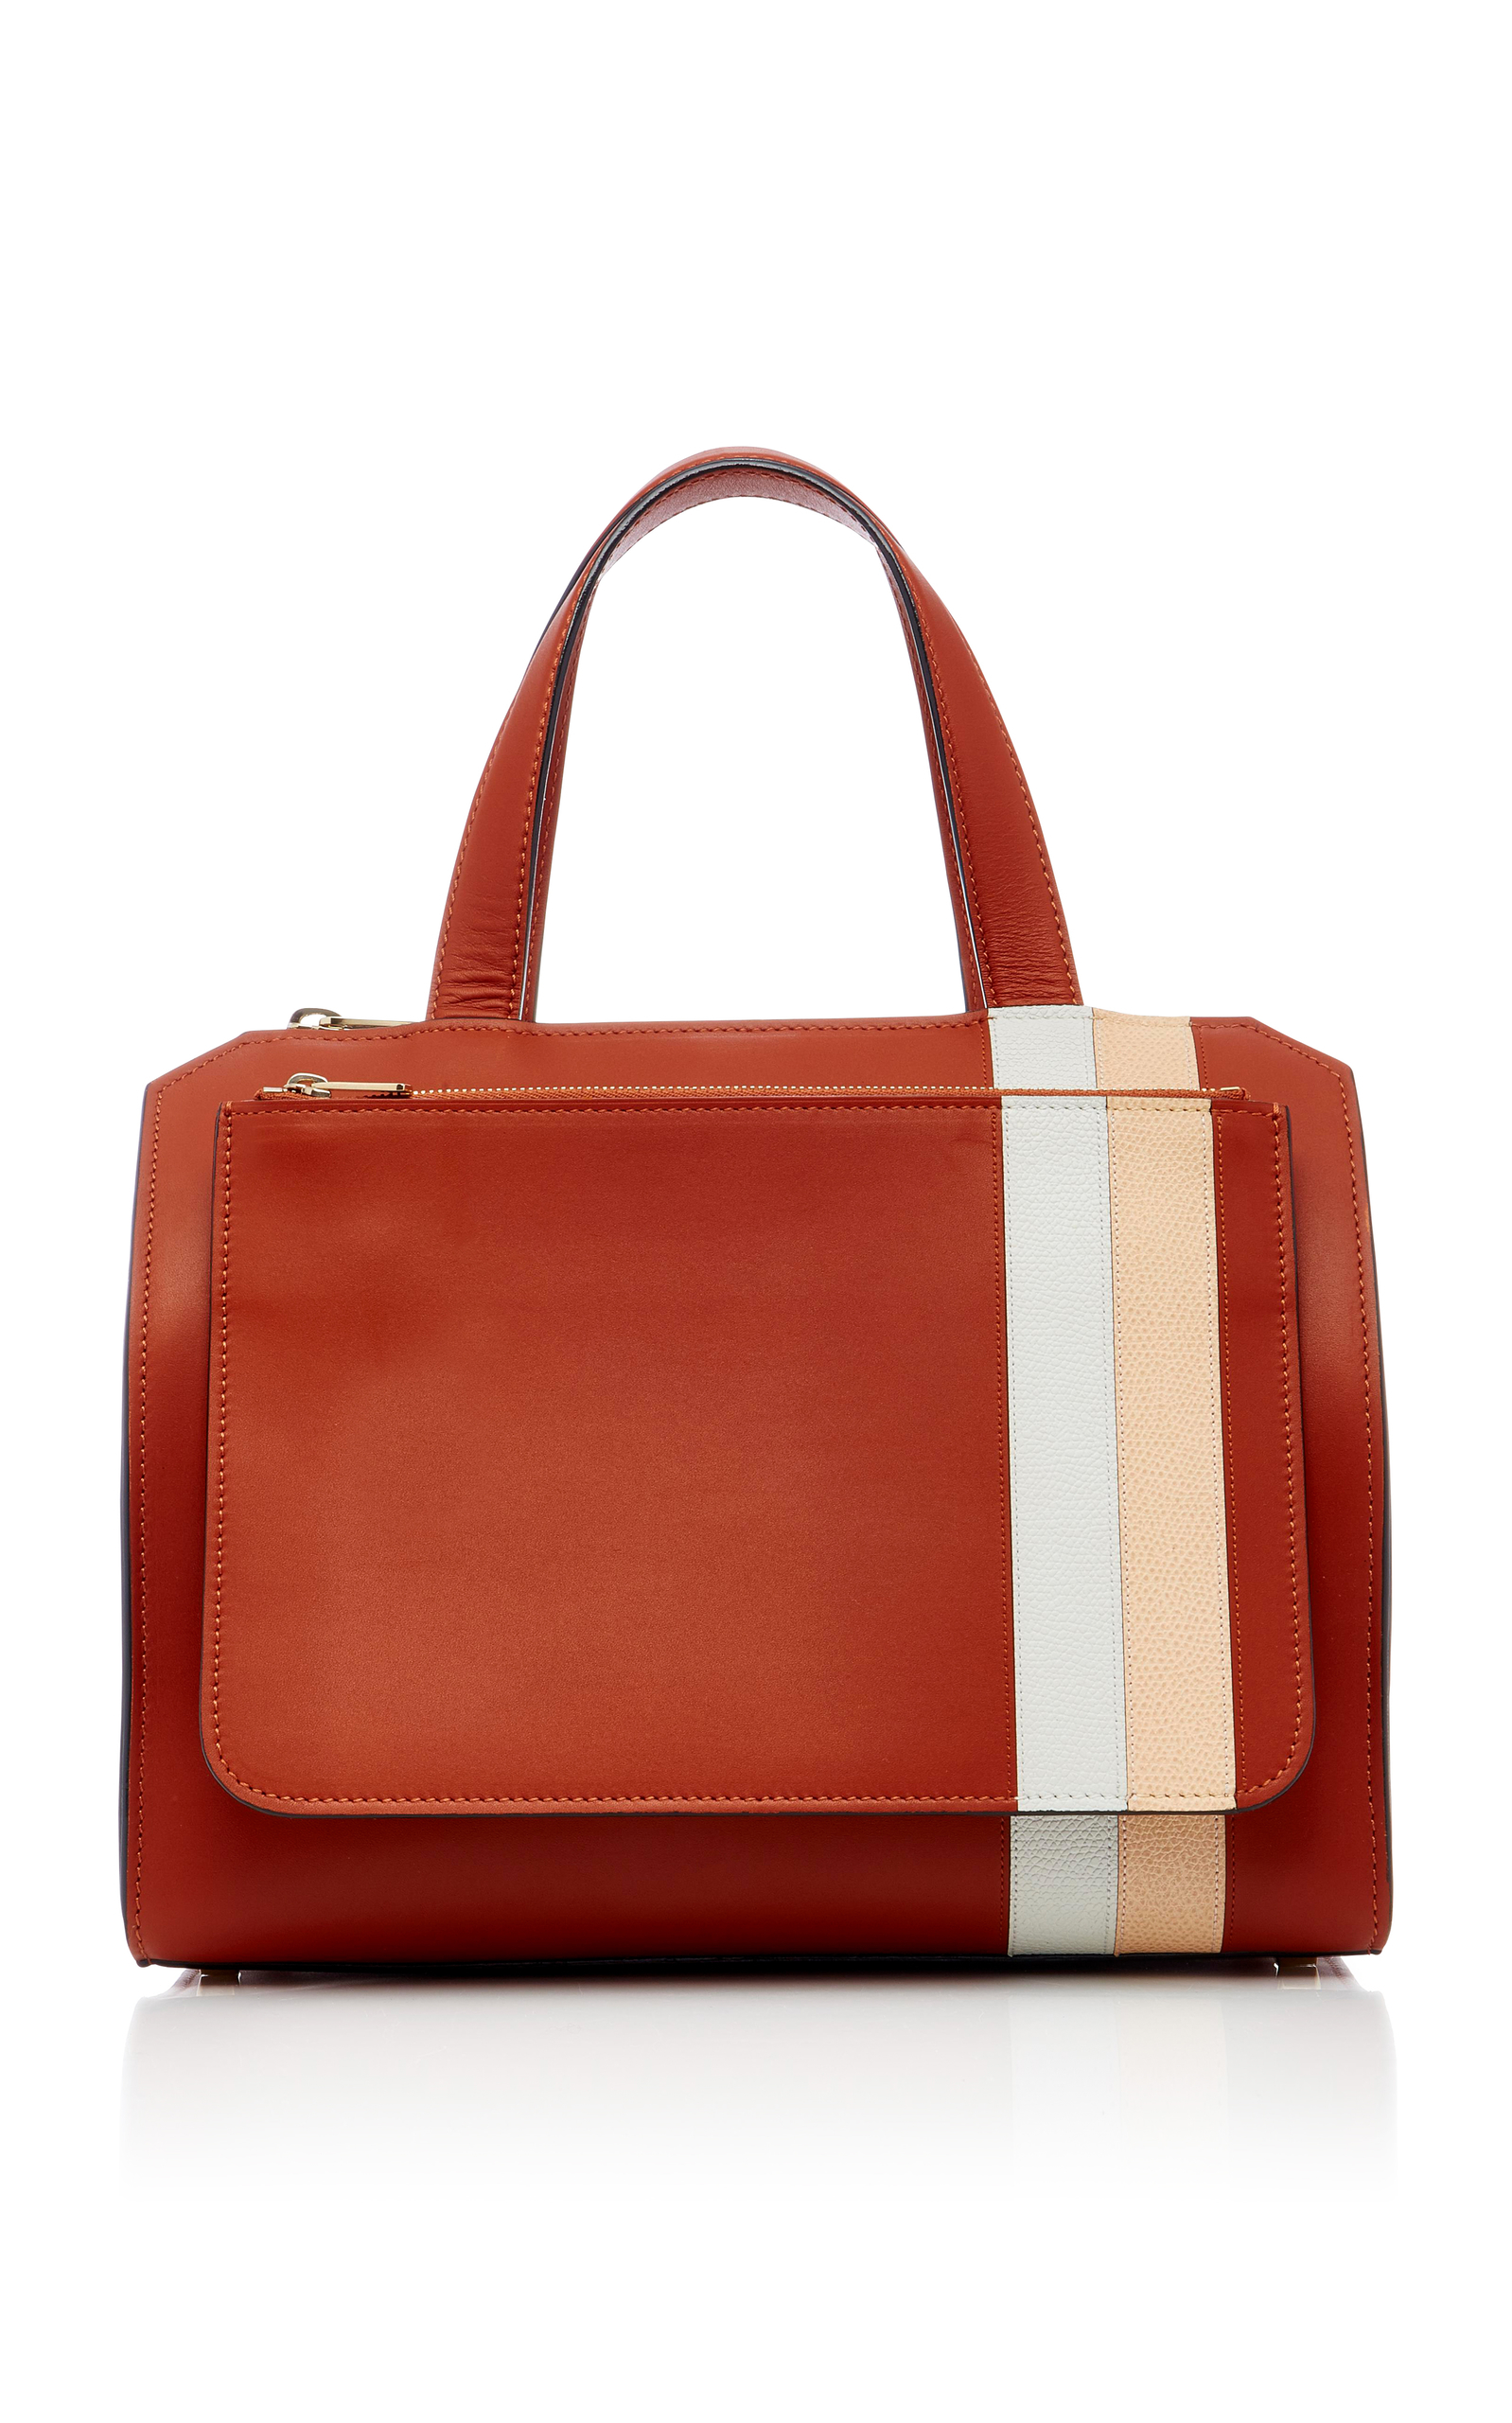 Foto Passepartout Linea Toothpaste Passepartout Leather Bag